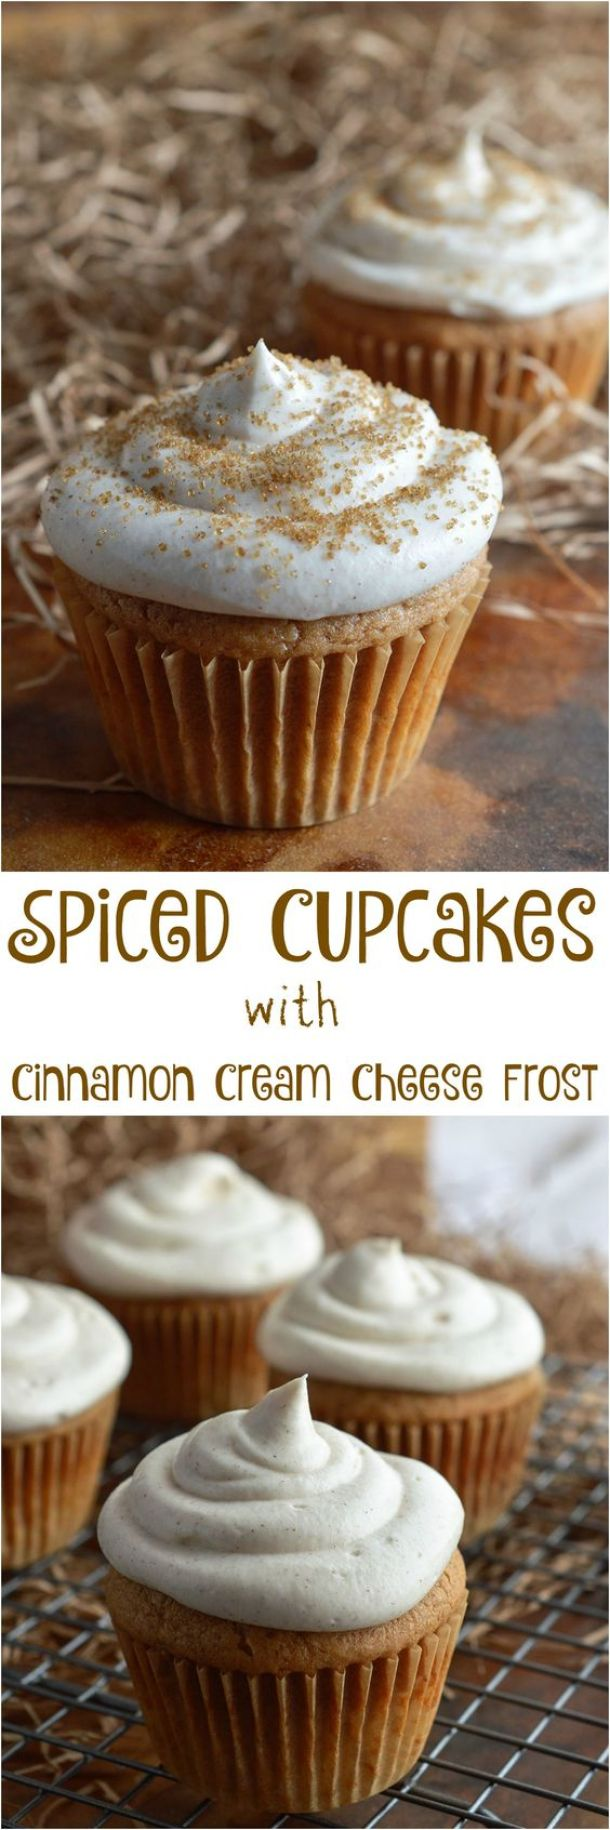 Spiced Cupcakes with Cinnamon Cream Cheese Frosting Recipe | Wonky Wonderful